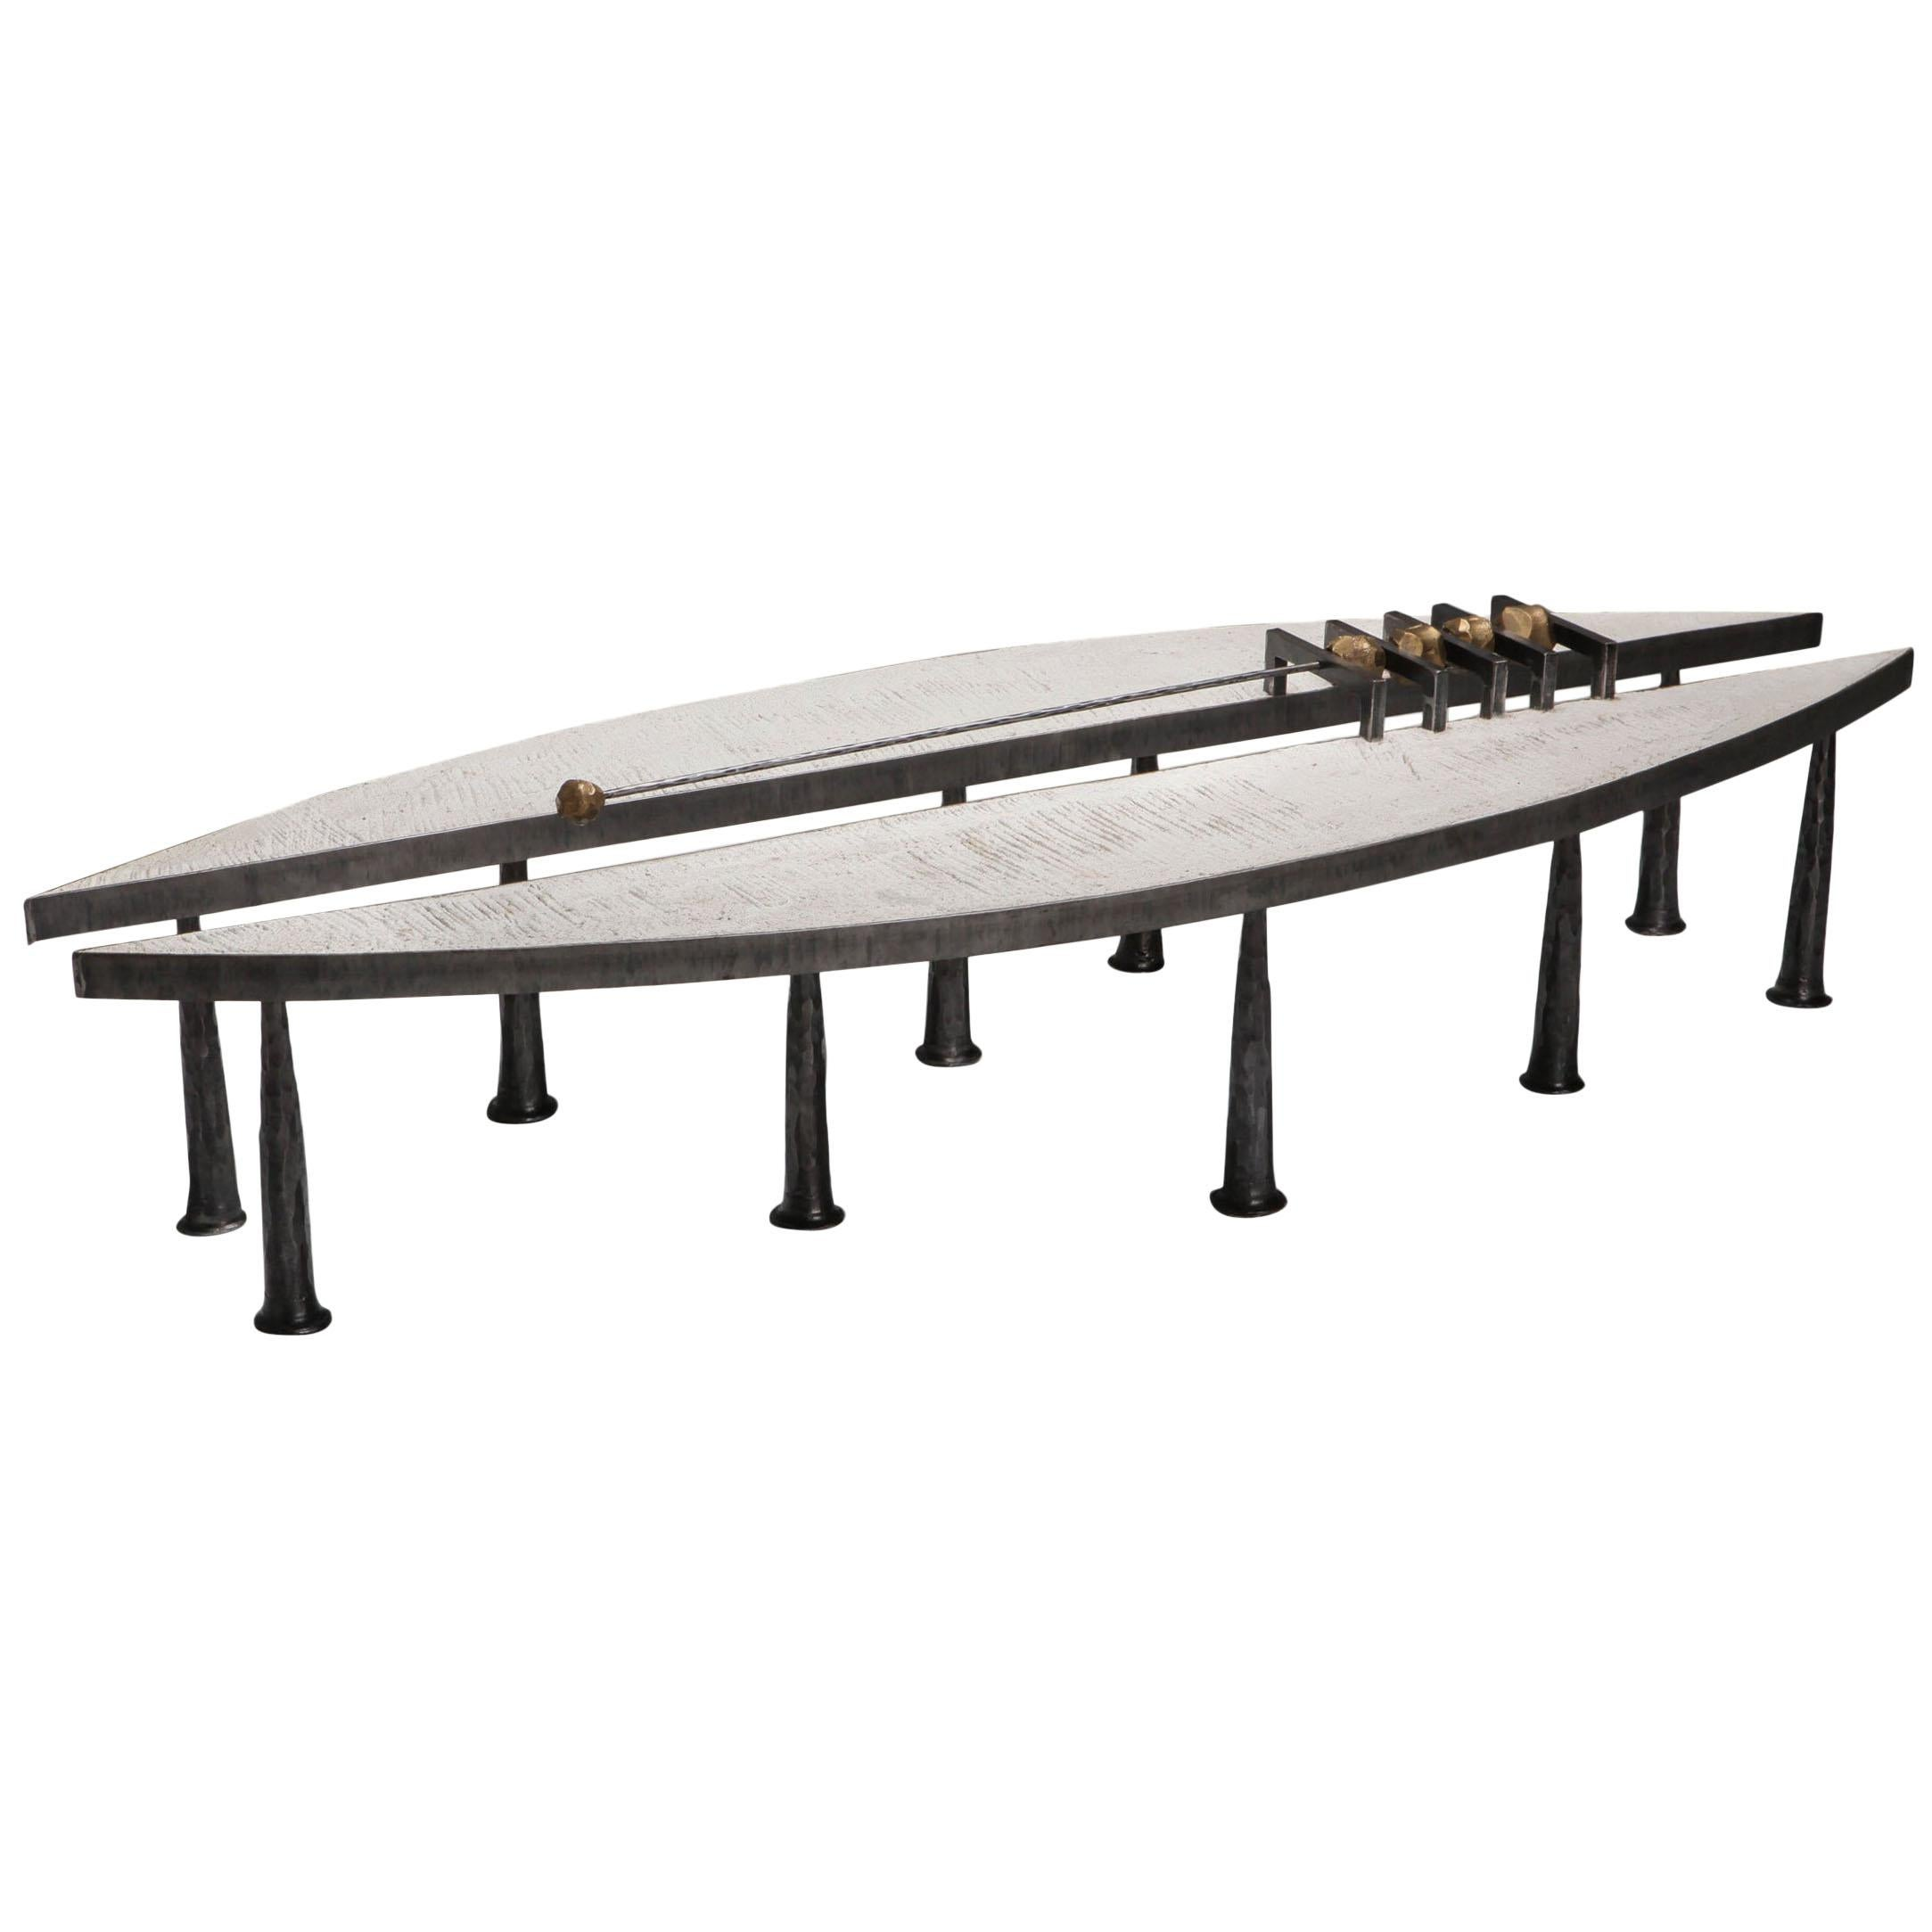 Brutalist One-of-a-Kind Coffee Table by Thomas Serruys